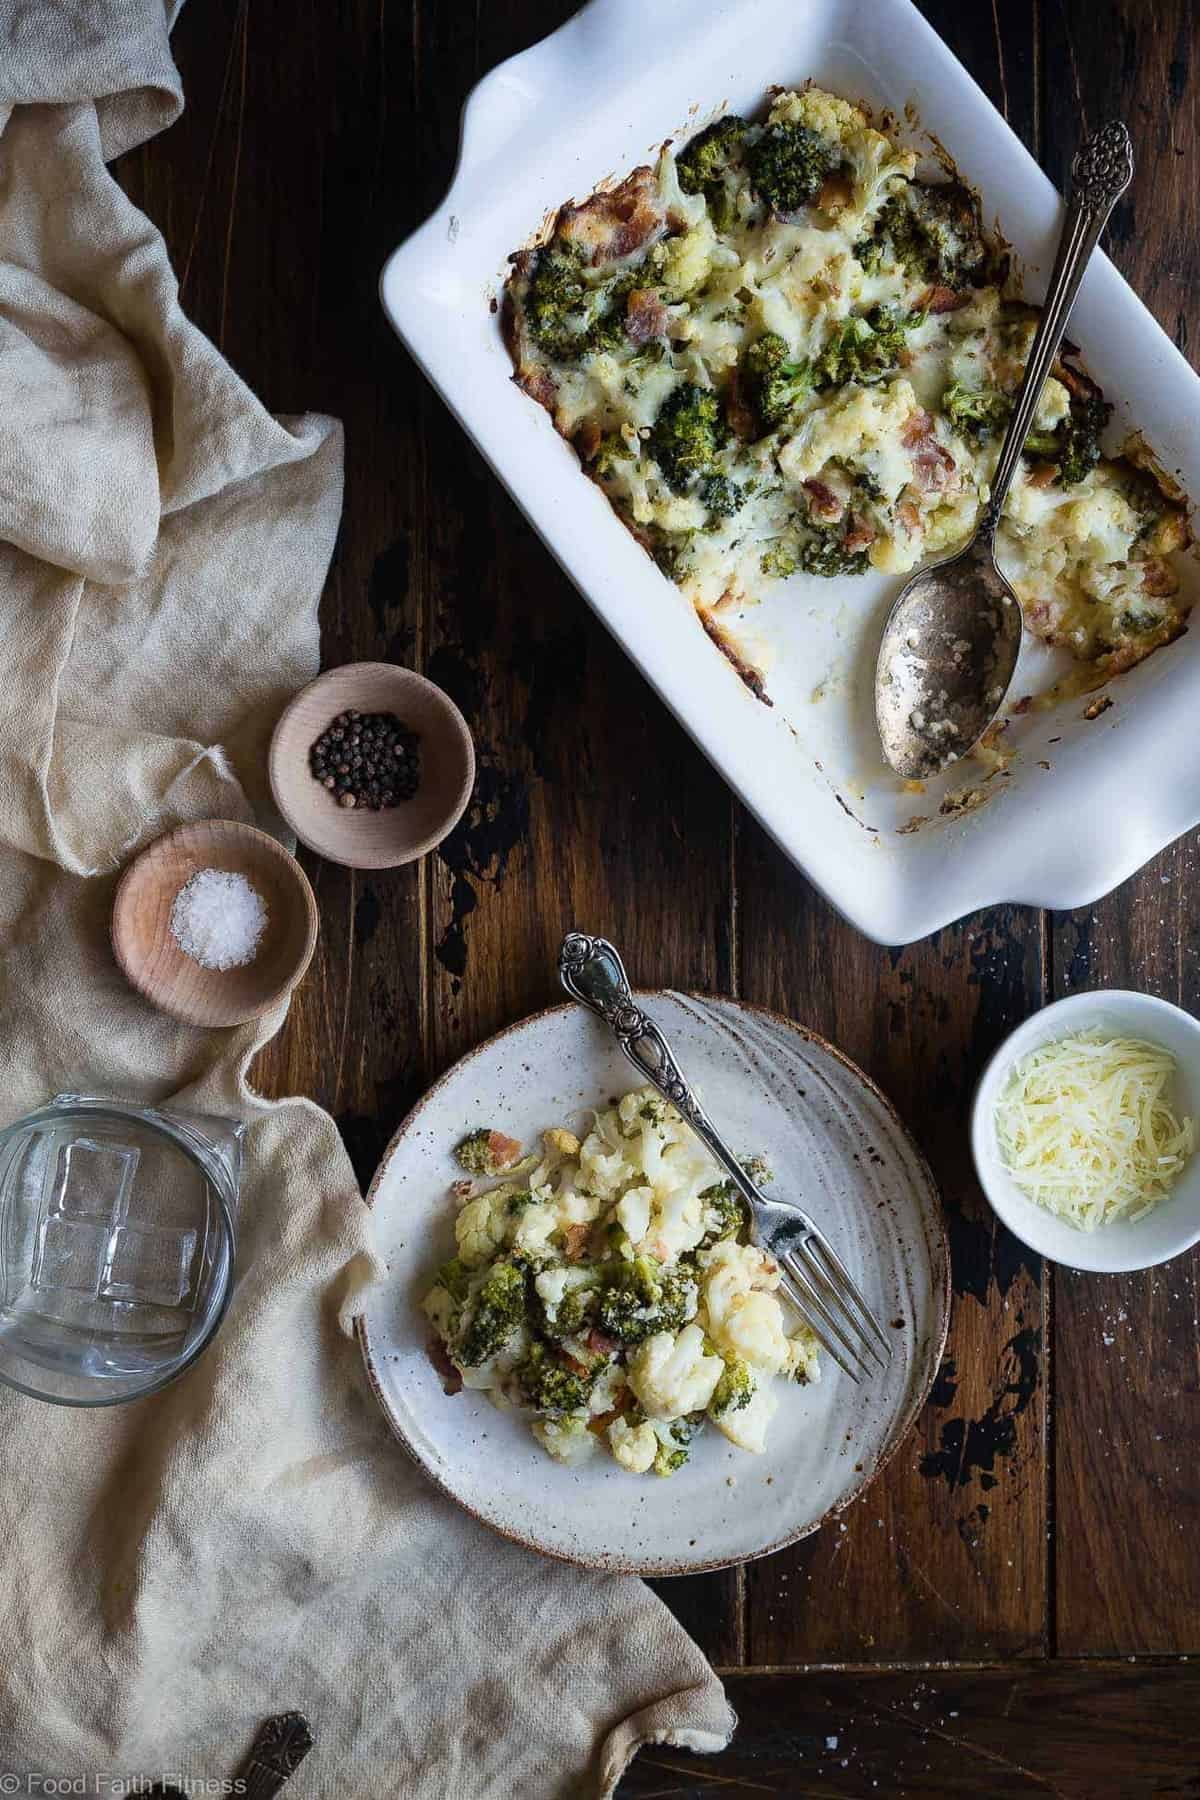 Easy Cheesy Broccoli Loaded Cauliflower Casserole - THE side dish that will make your family love vegetables - even picky eaters! Low carb, gluten/grain/sugar free and keto friendly too! | #Foodfaithfitness | #Glutenfree #Keto #Lowcarb #Cauliflower #Healthy